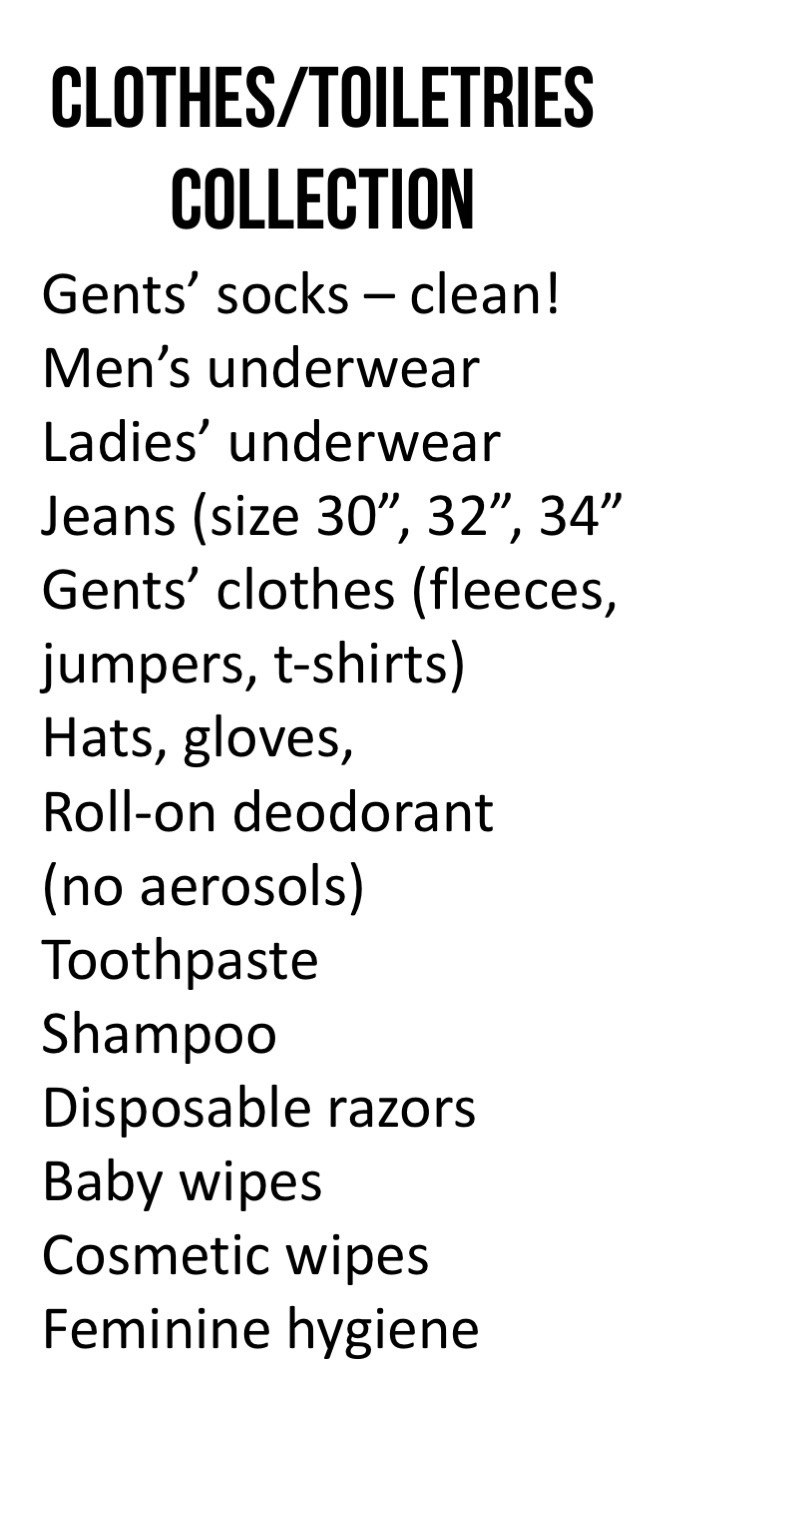 clothes list.jpg